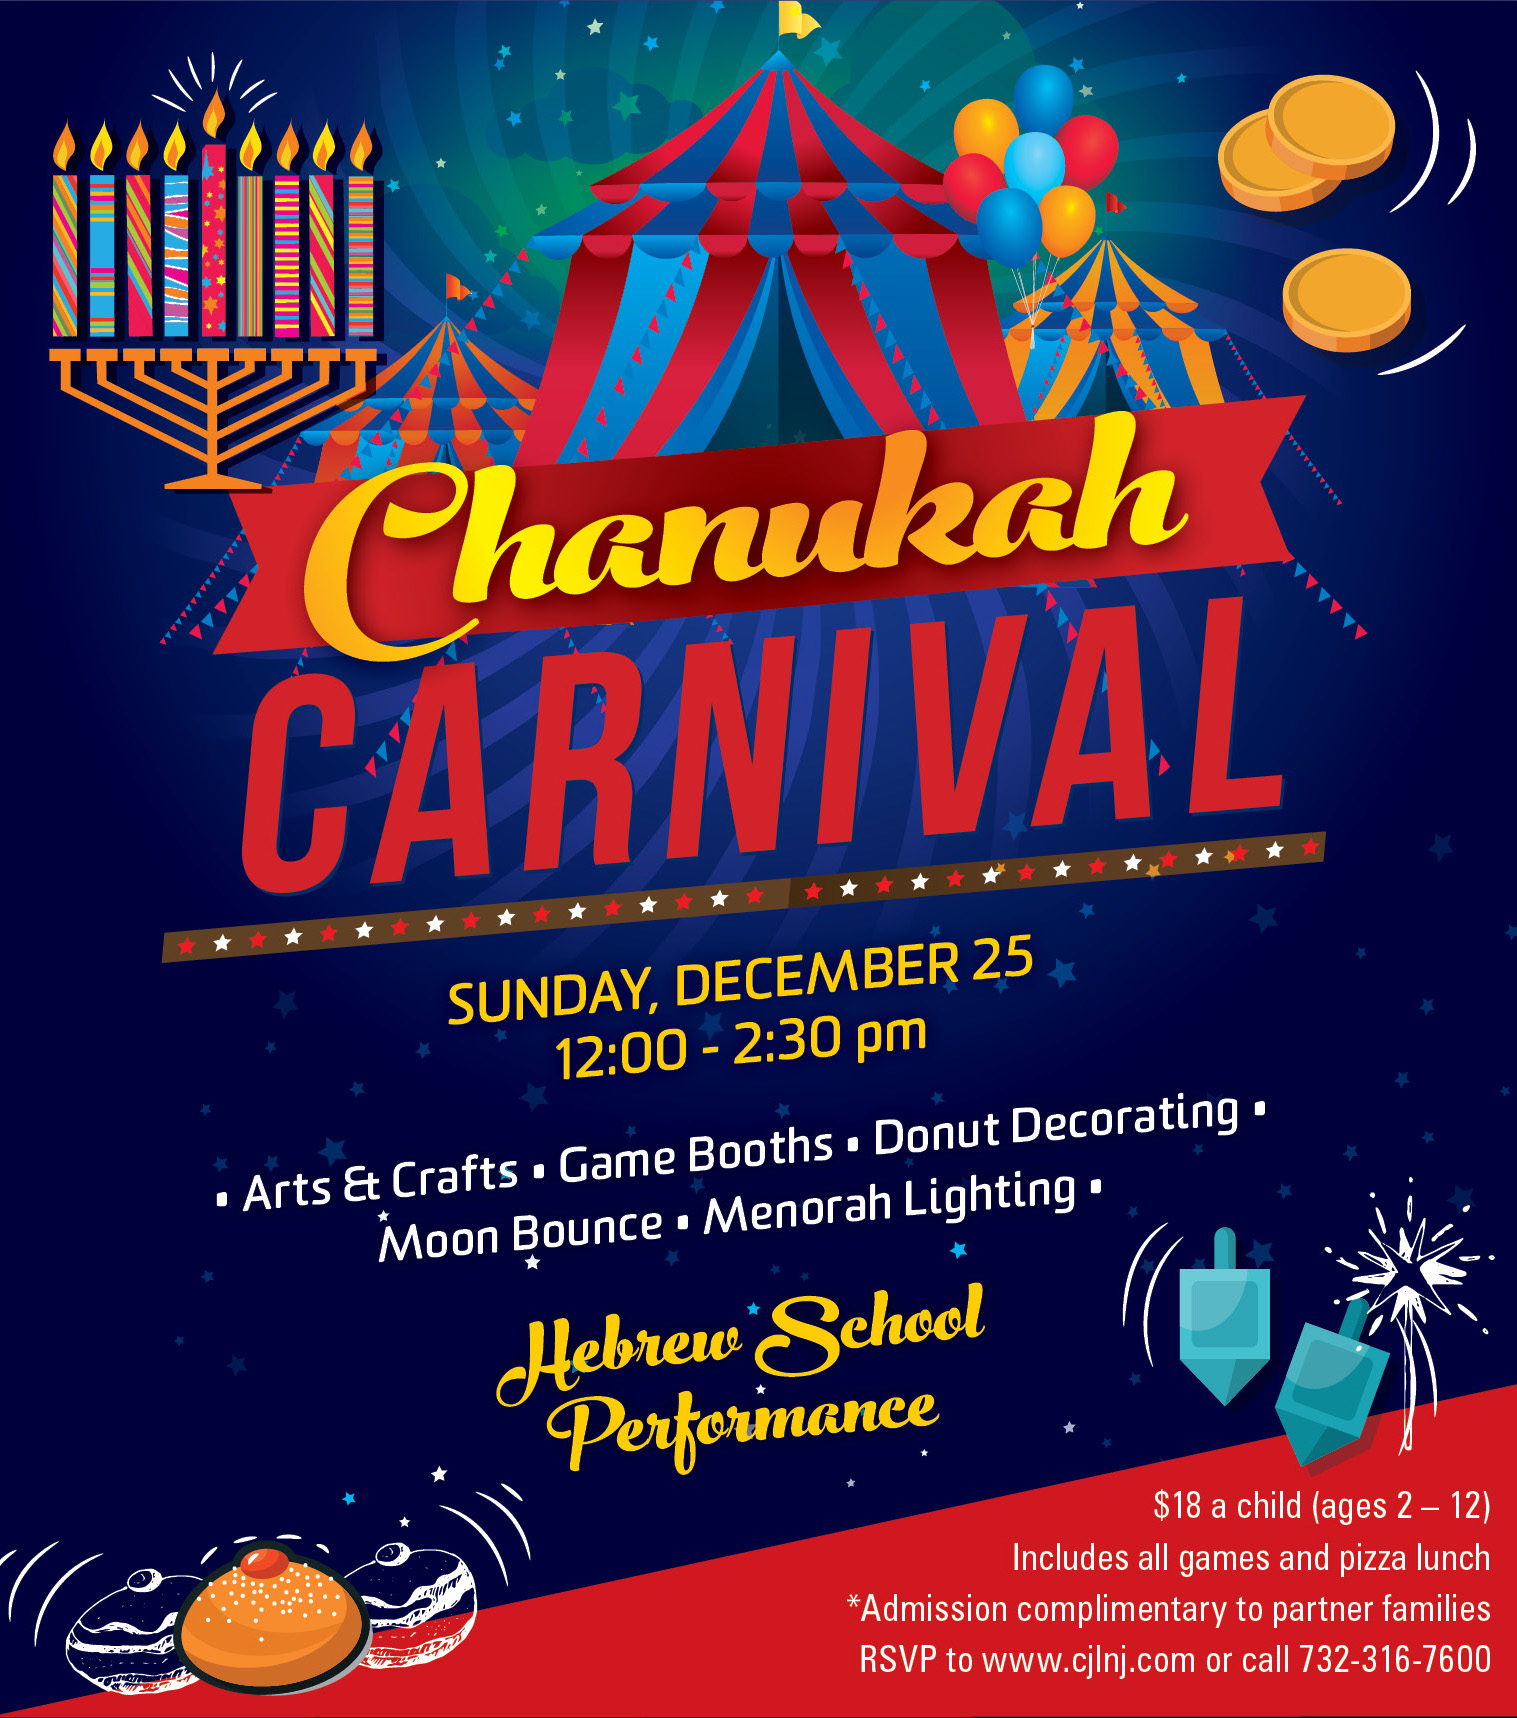 Chanukah Carnival 2016 Event Center For Jewish Life